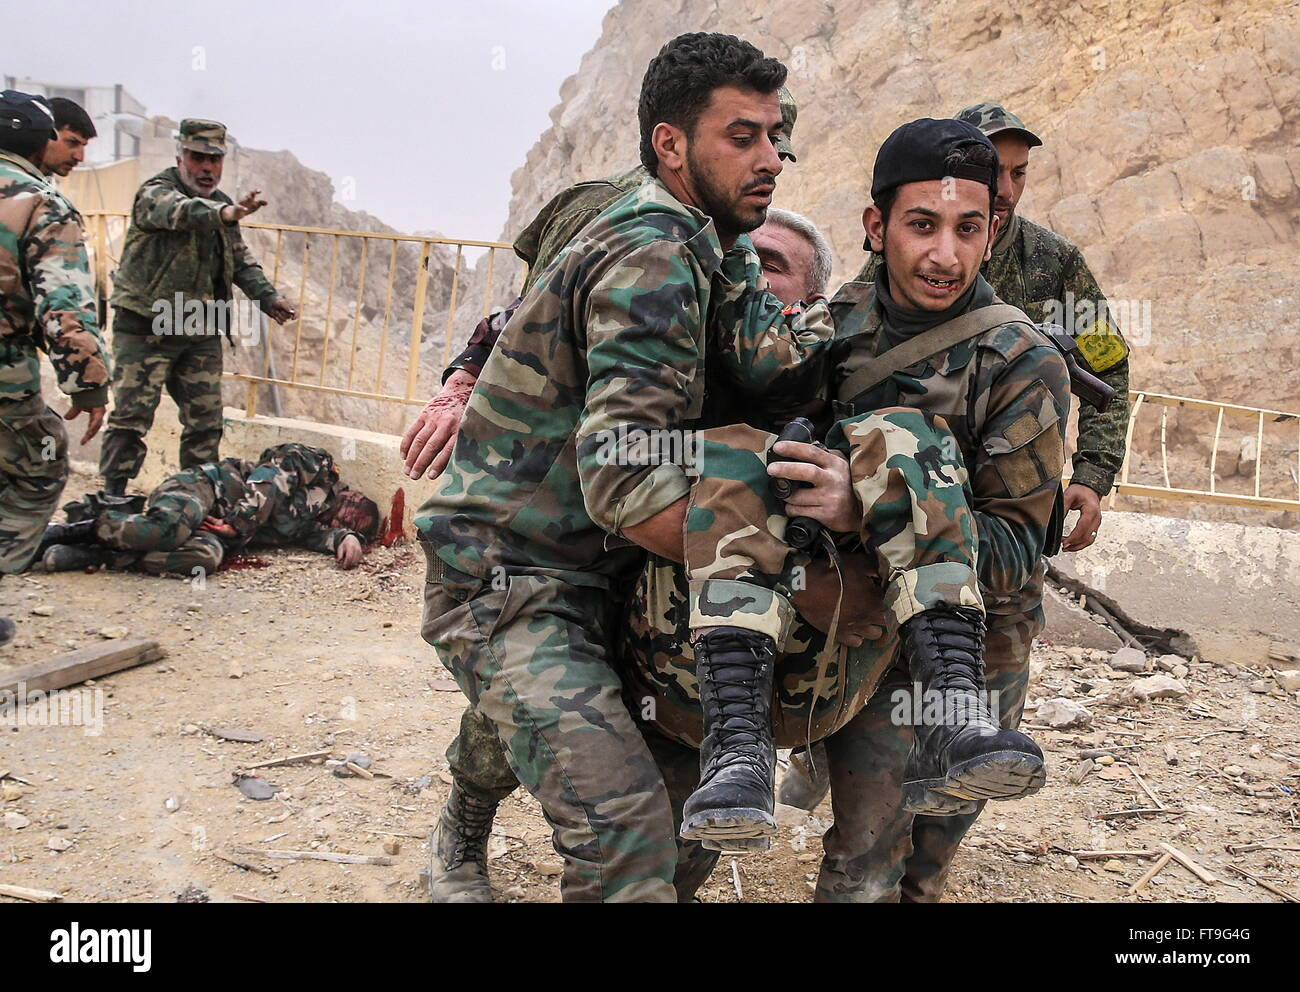 Palmyra, Syria. 26th Mar, 2016. An injured soldier of the Syrian government army at the Fahkr ad-Din al-Maani castle Stock Photo